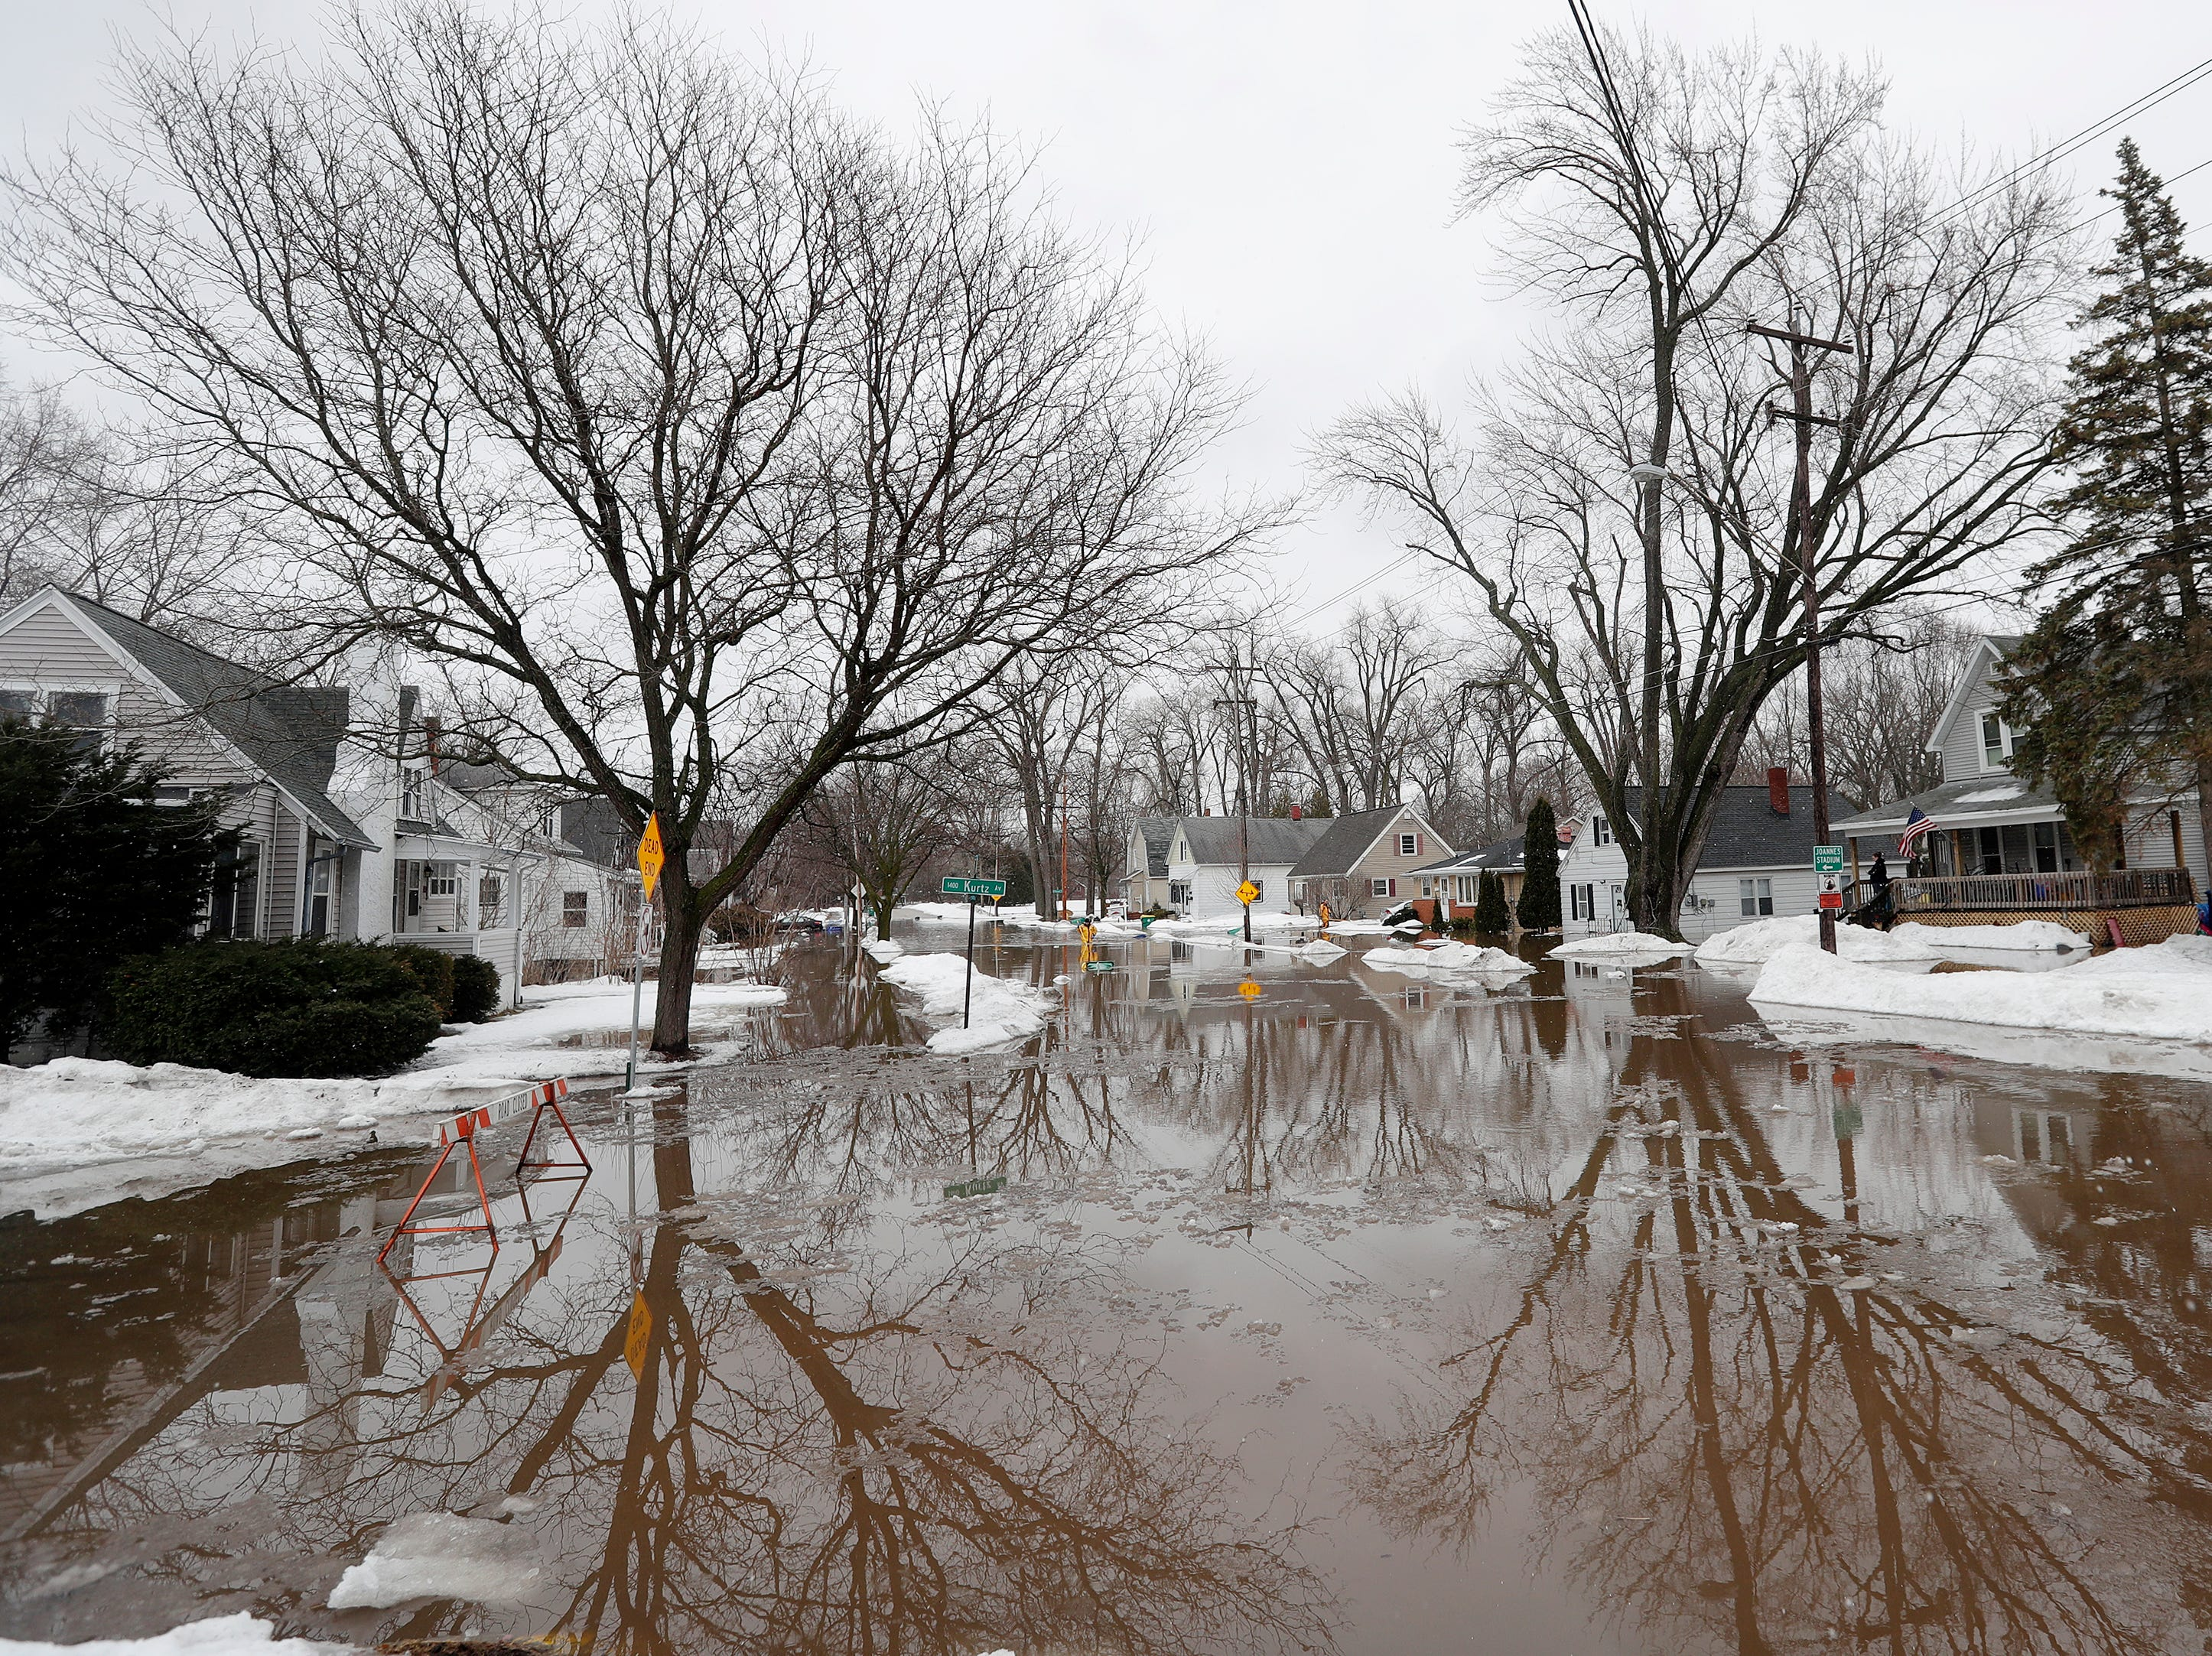 Crooks Street is submerged by East river floodwaters on Friday, March 15, 2019 in Green Bay, Wis.